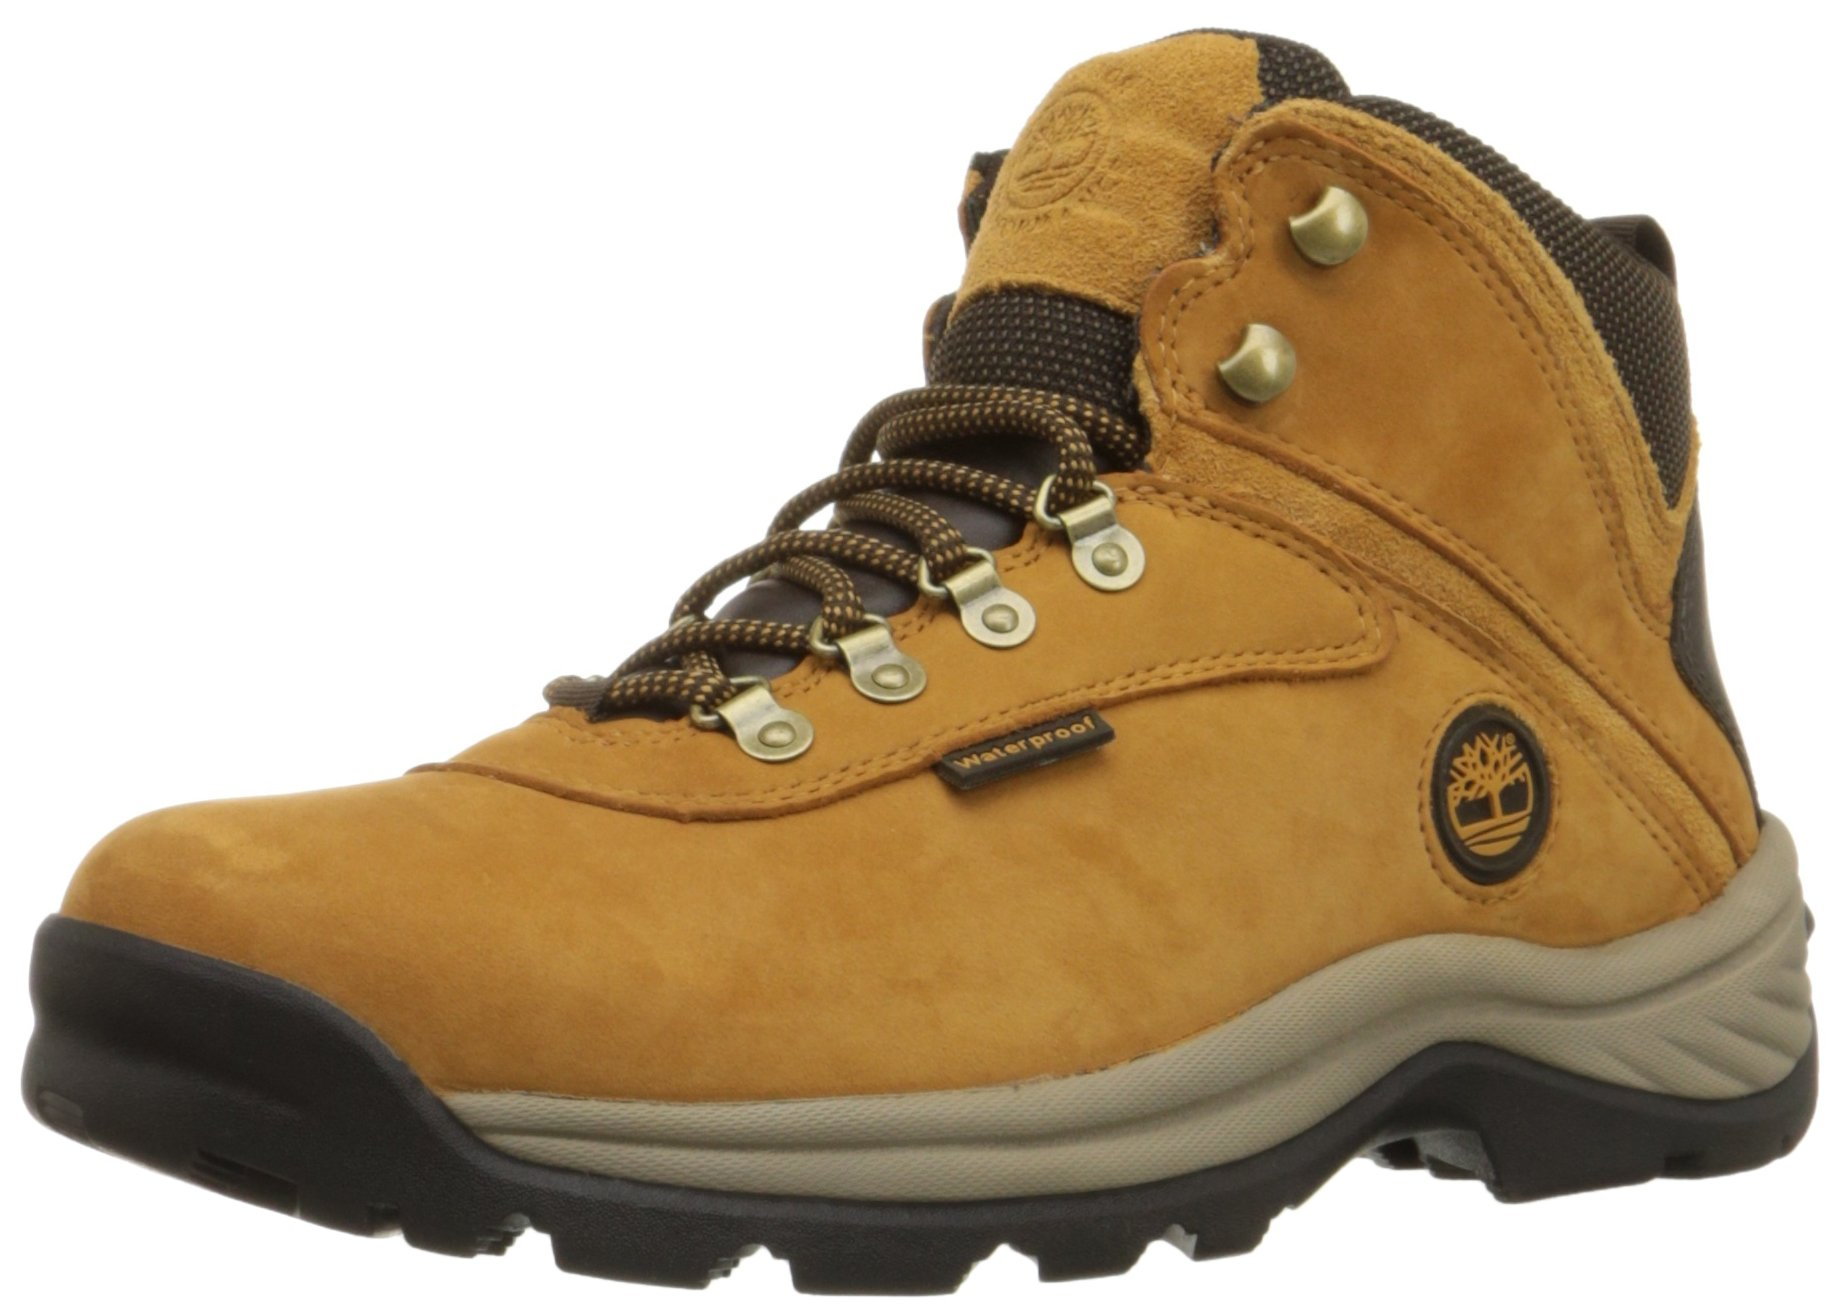 Timberland Men's Whiteledge Hiker Boot,Wheat,8 M US